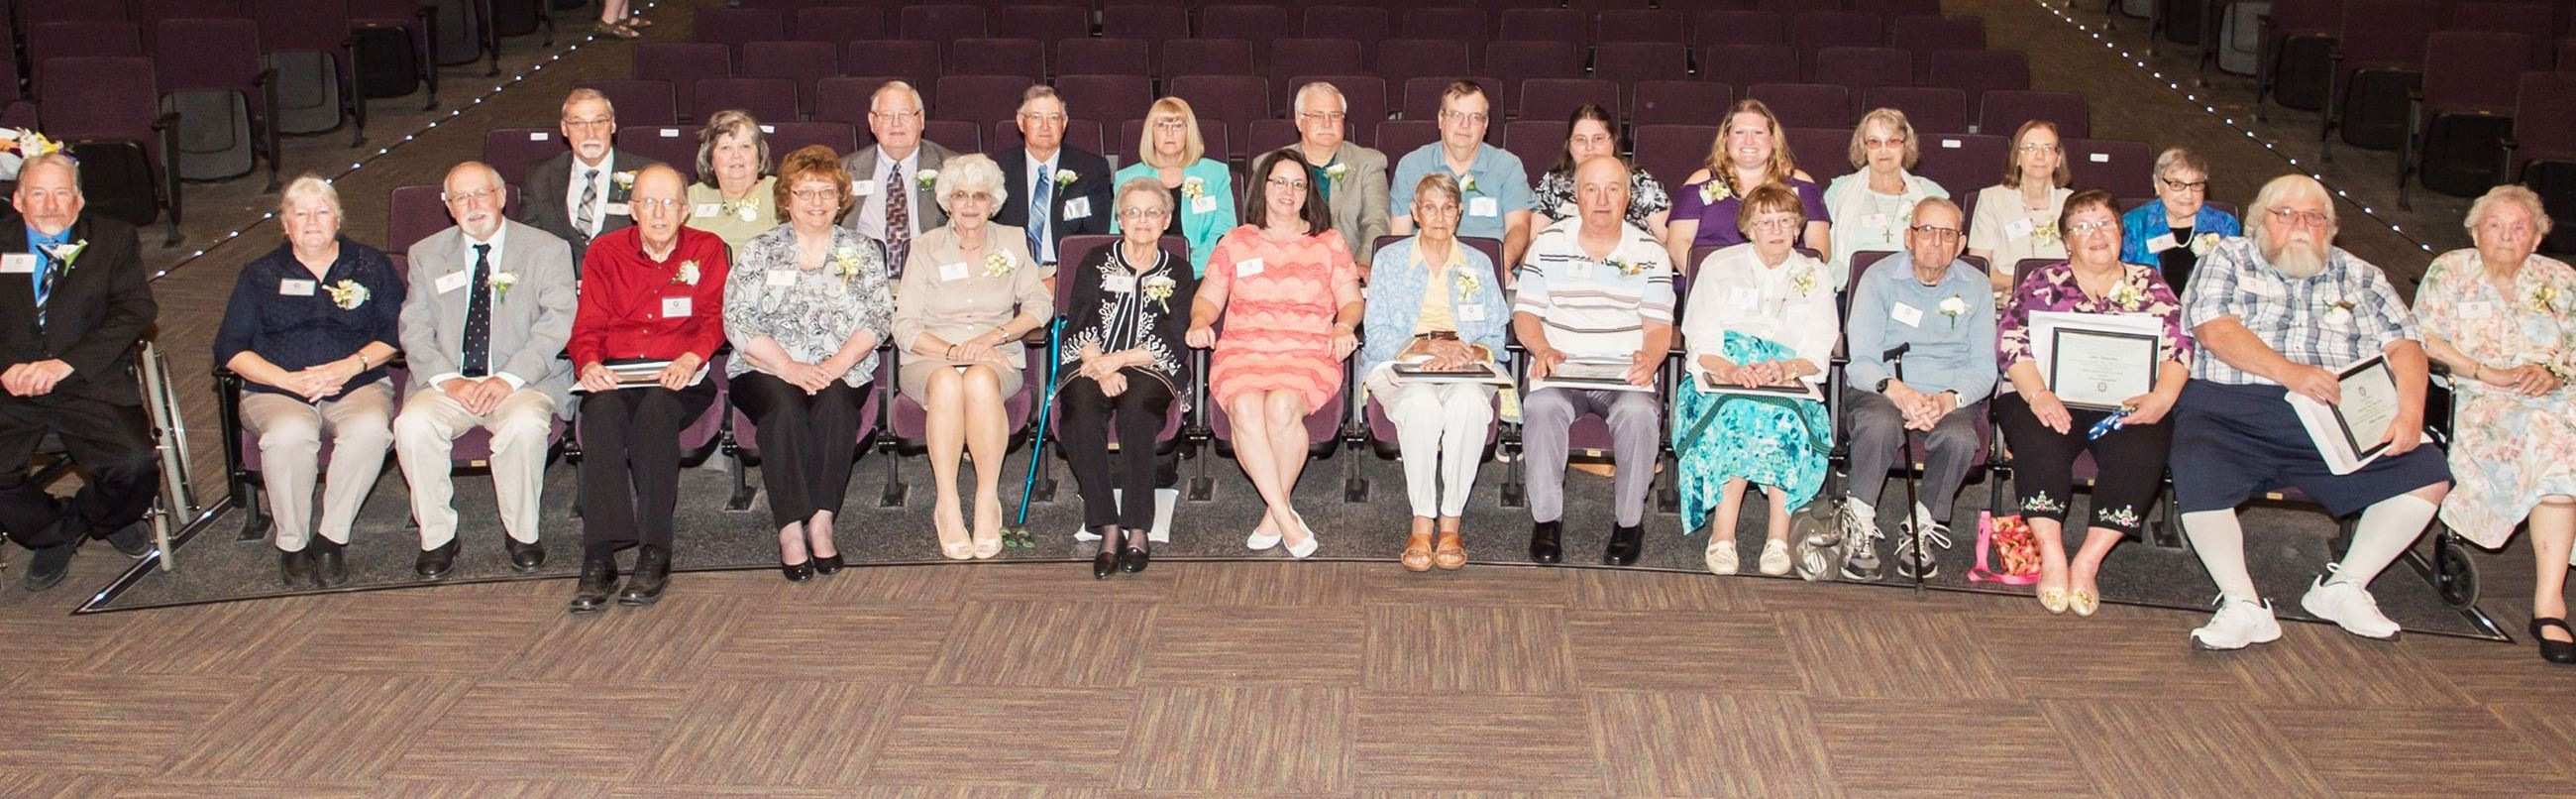 2018 Seniorama Group